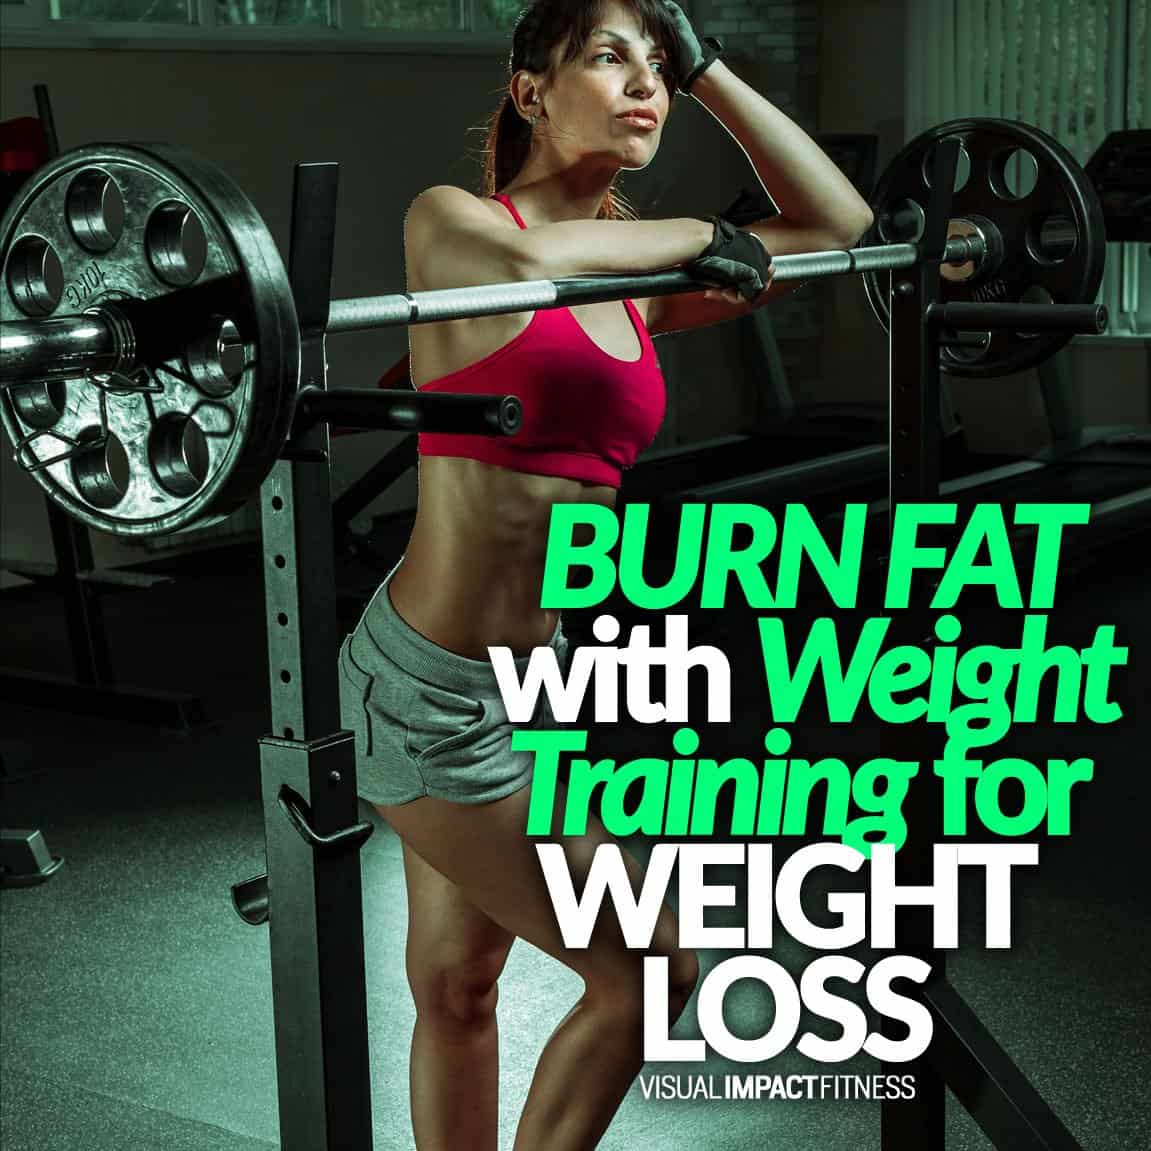 BURN FAT with Weight Training for WEIGHT LOSS